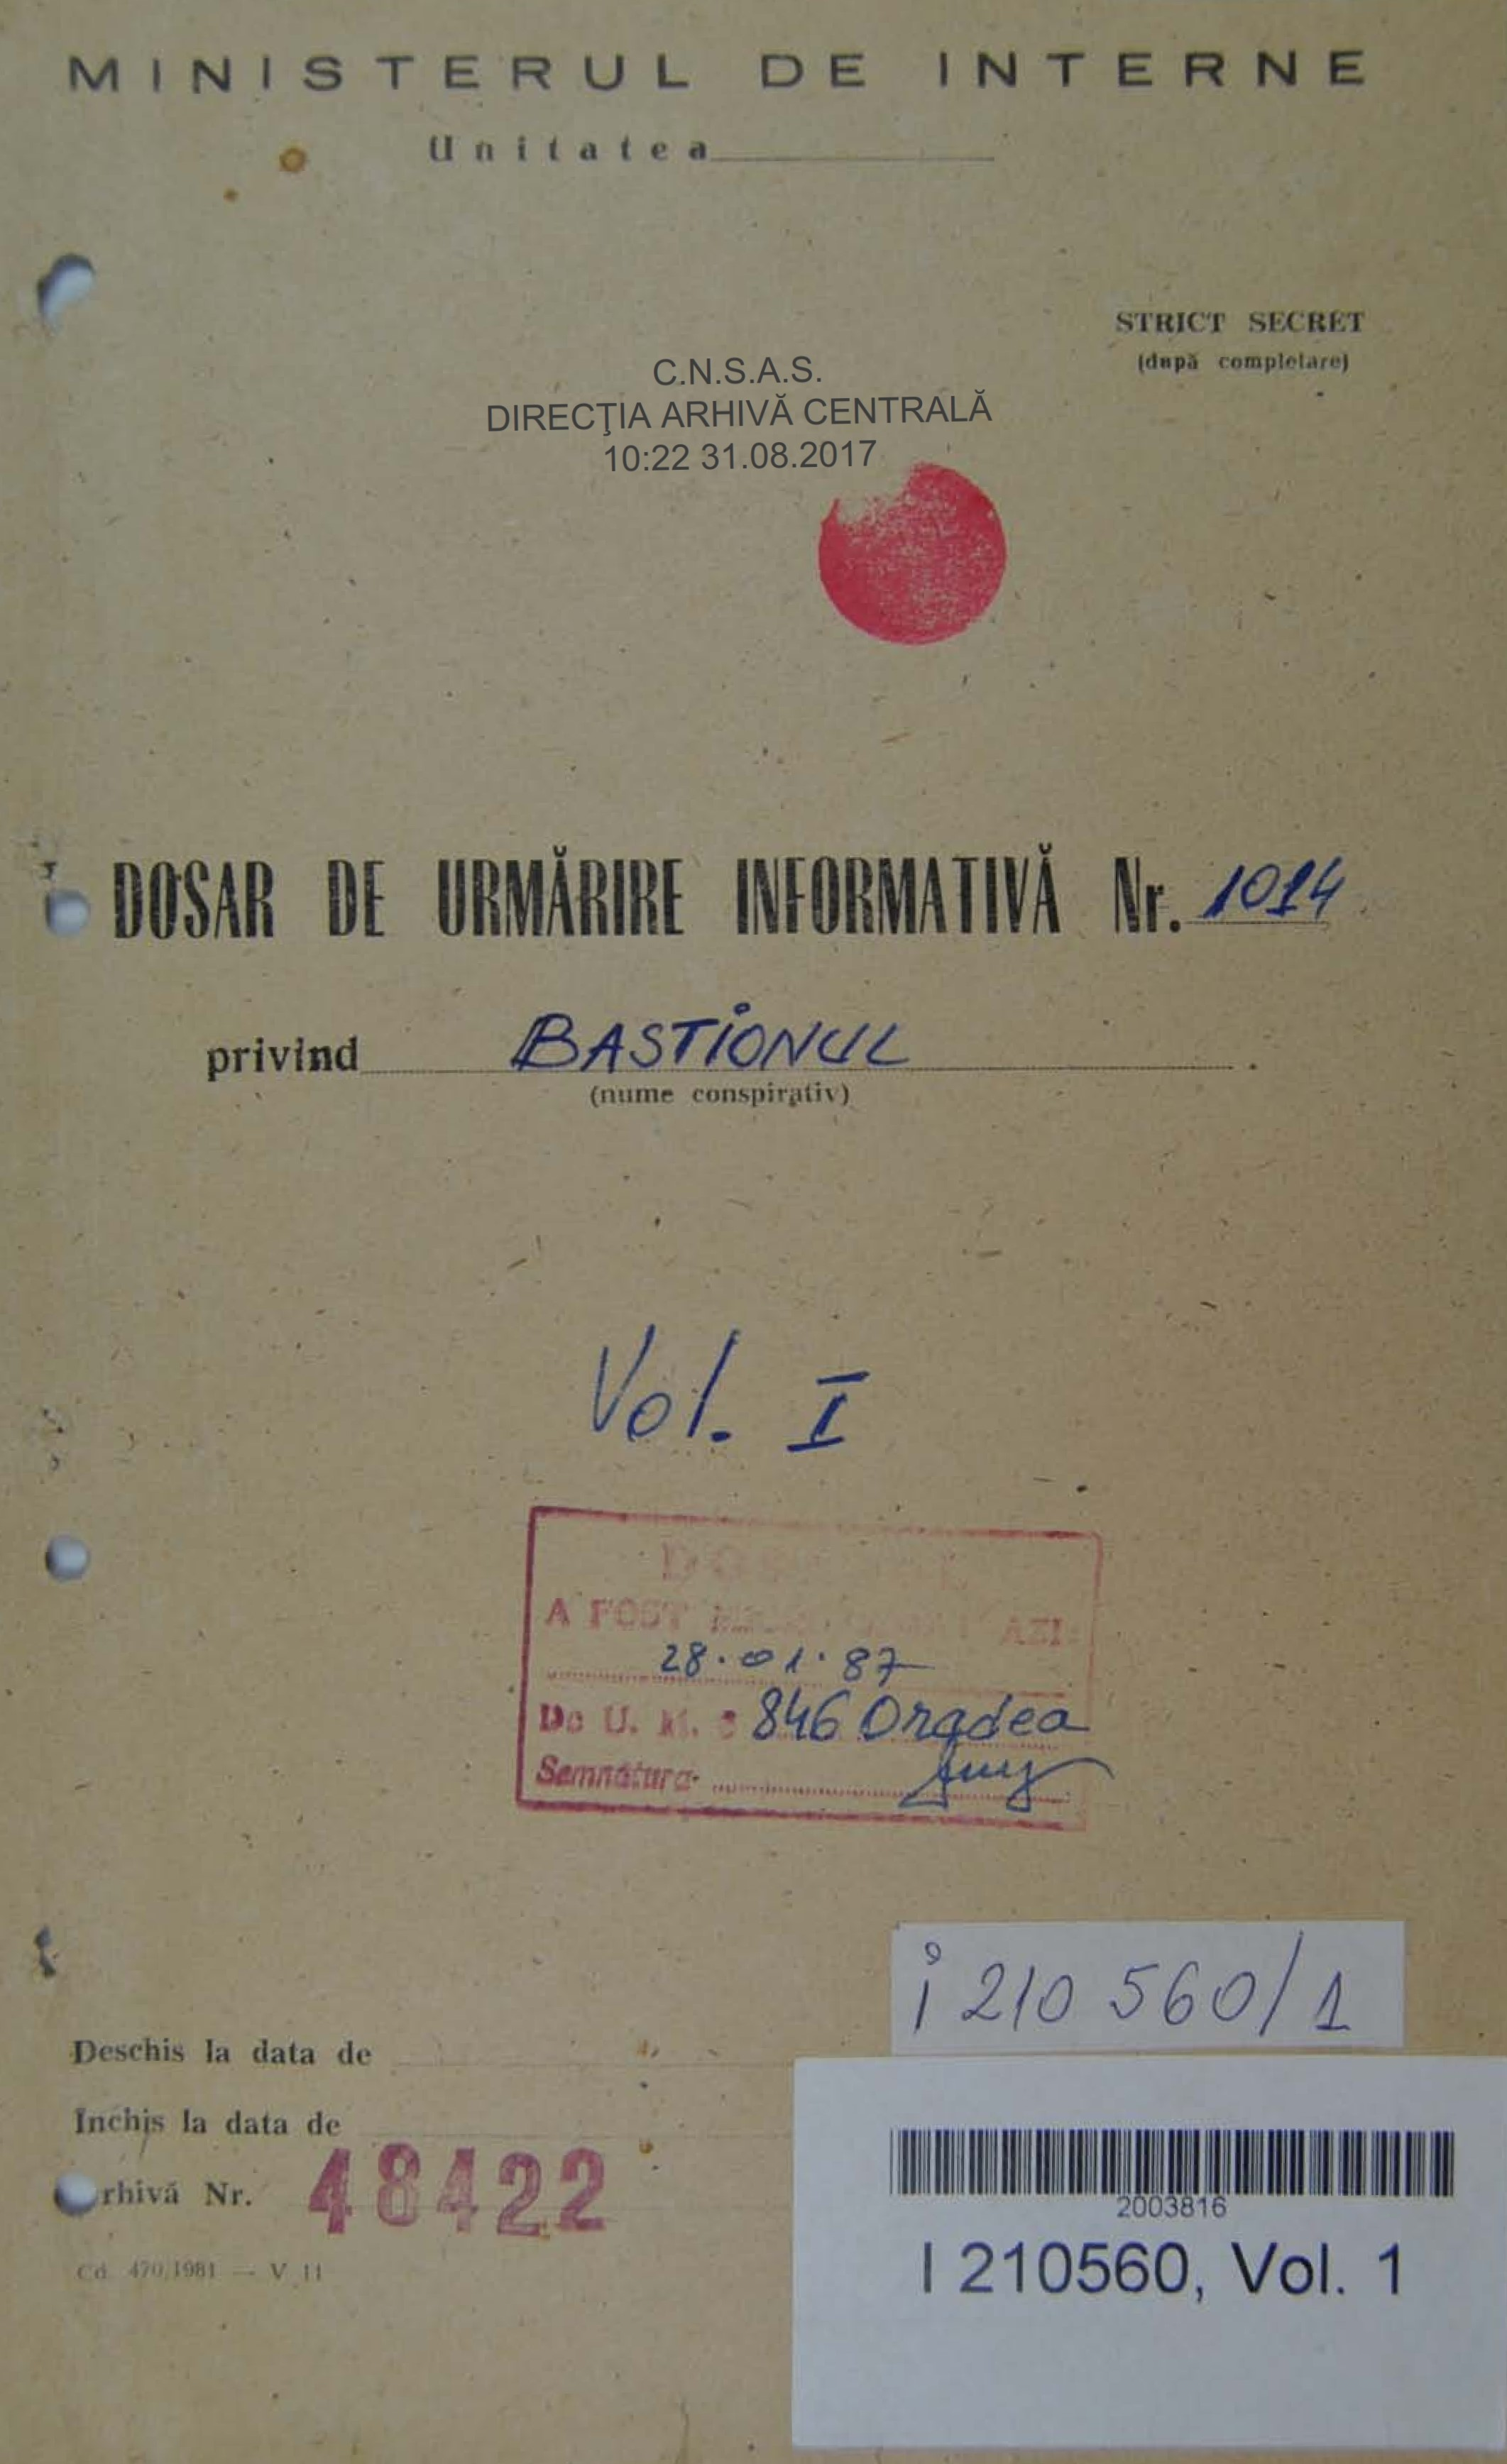 Front cover of the Antal Károly Tóth's informative surveillance file created by the Securitate